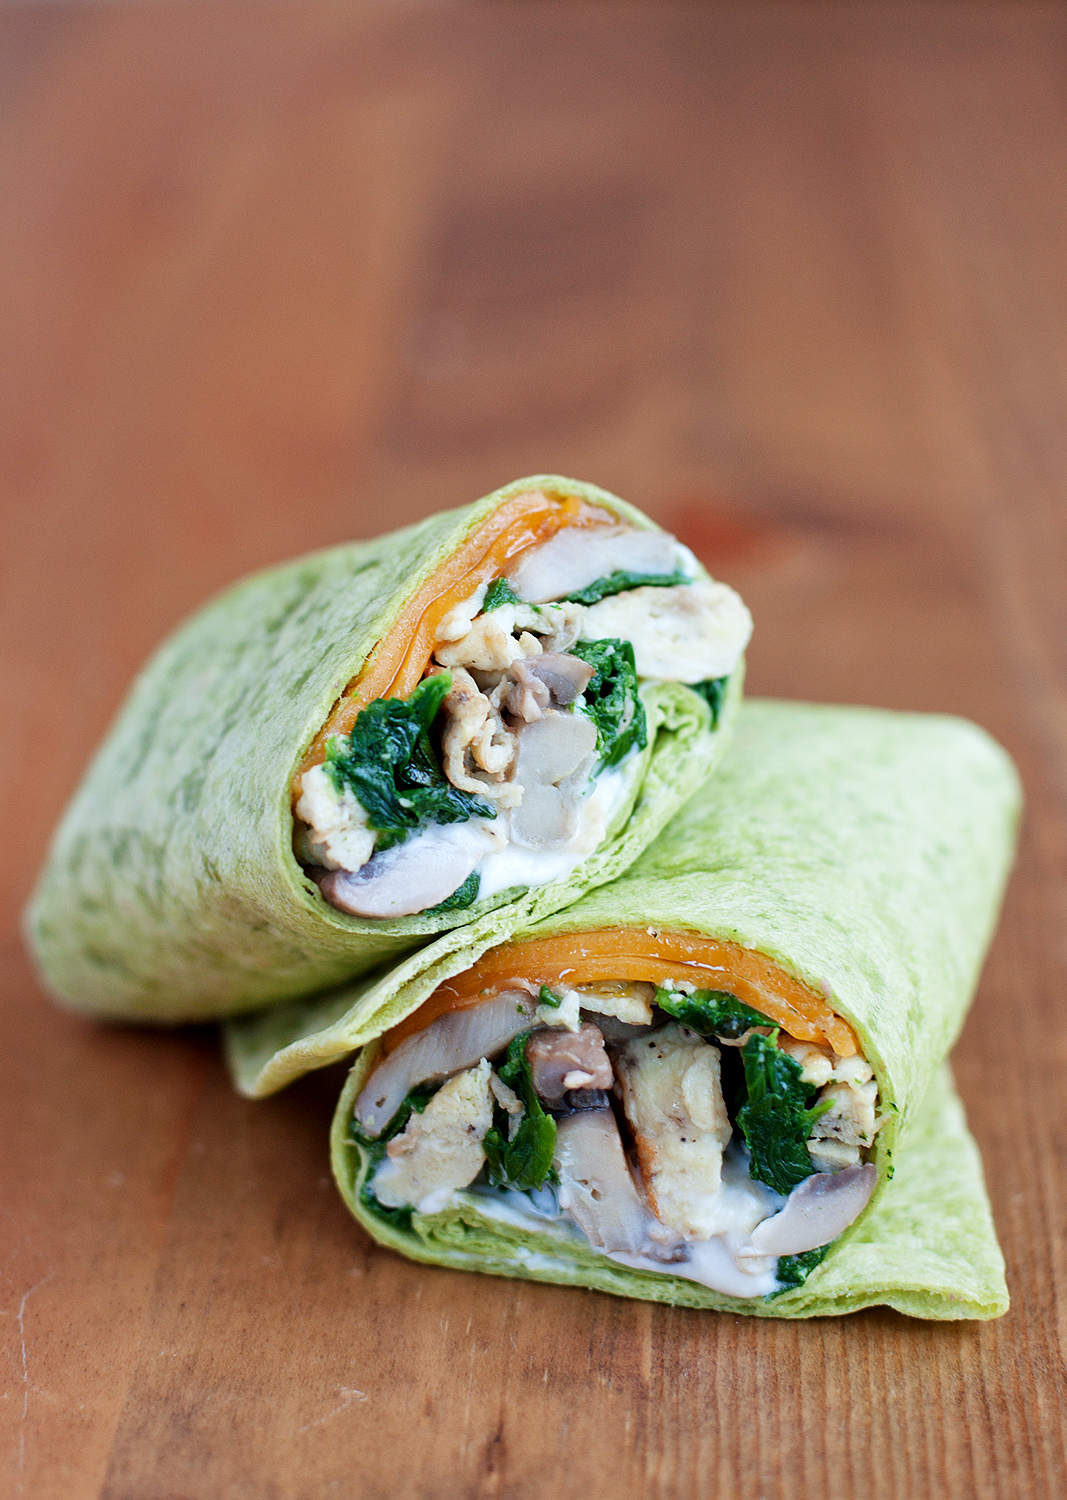 Spinach & Mushroom Scrambled Egg Wrap | BS' in the Kitchen